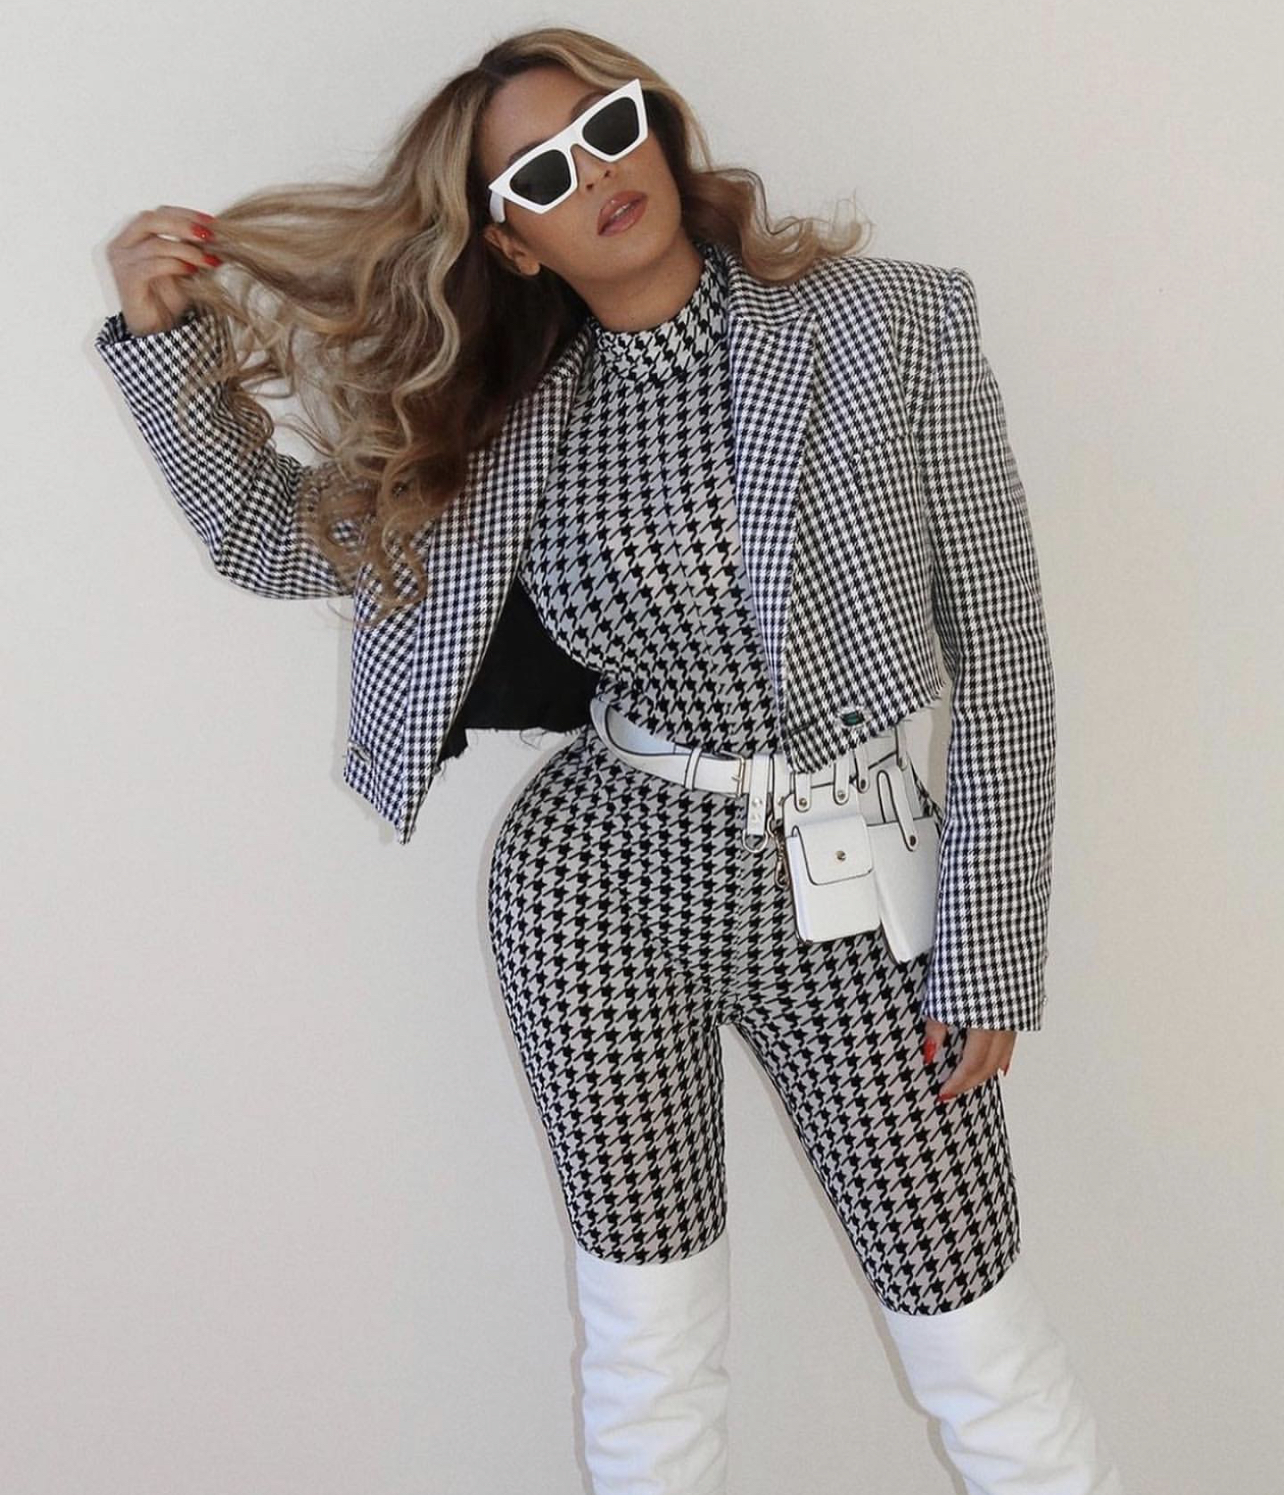 beyonce-knowles-wore-david-koma-houndstooth-outfit-instagram